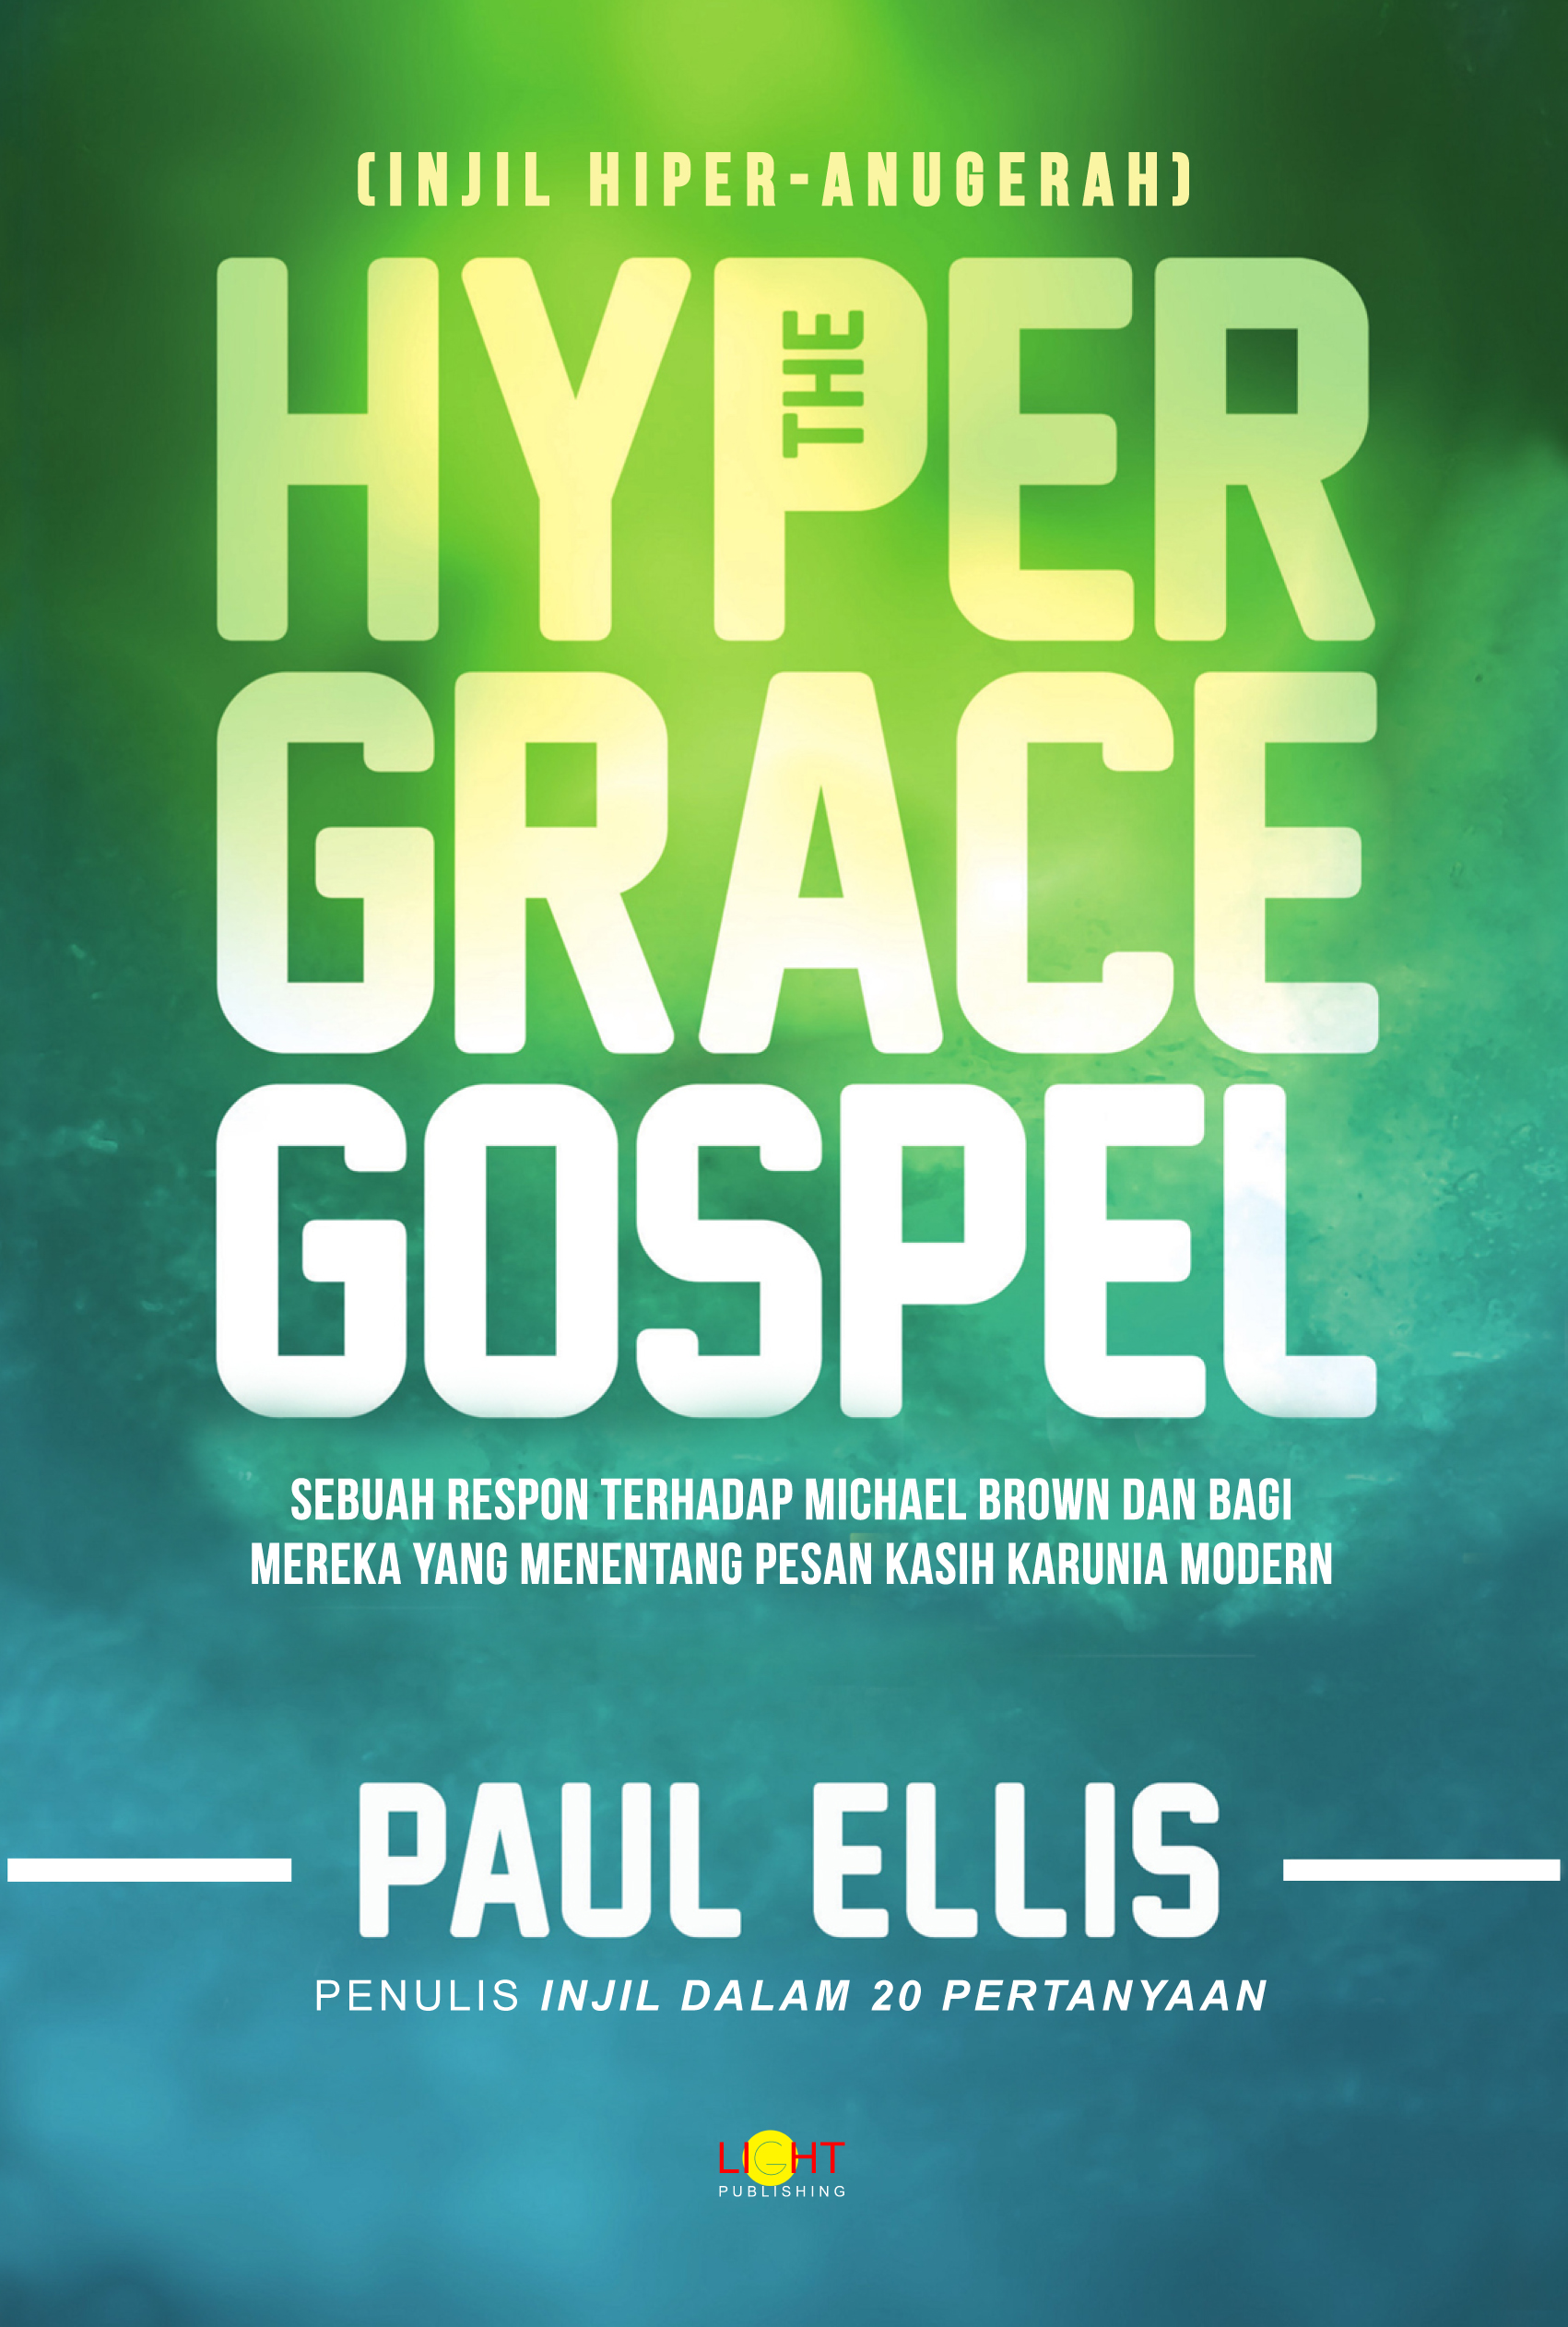 The Hyper Grace Gospel